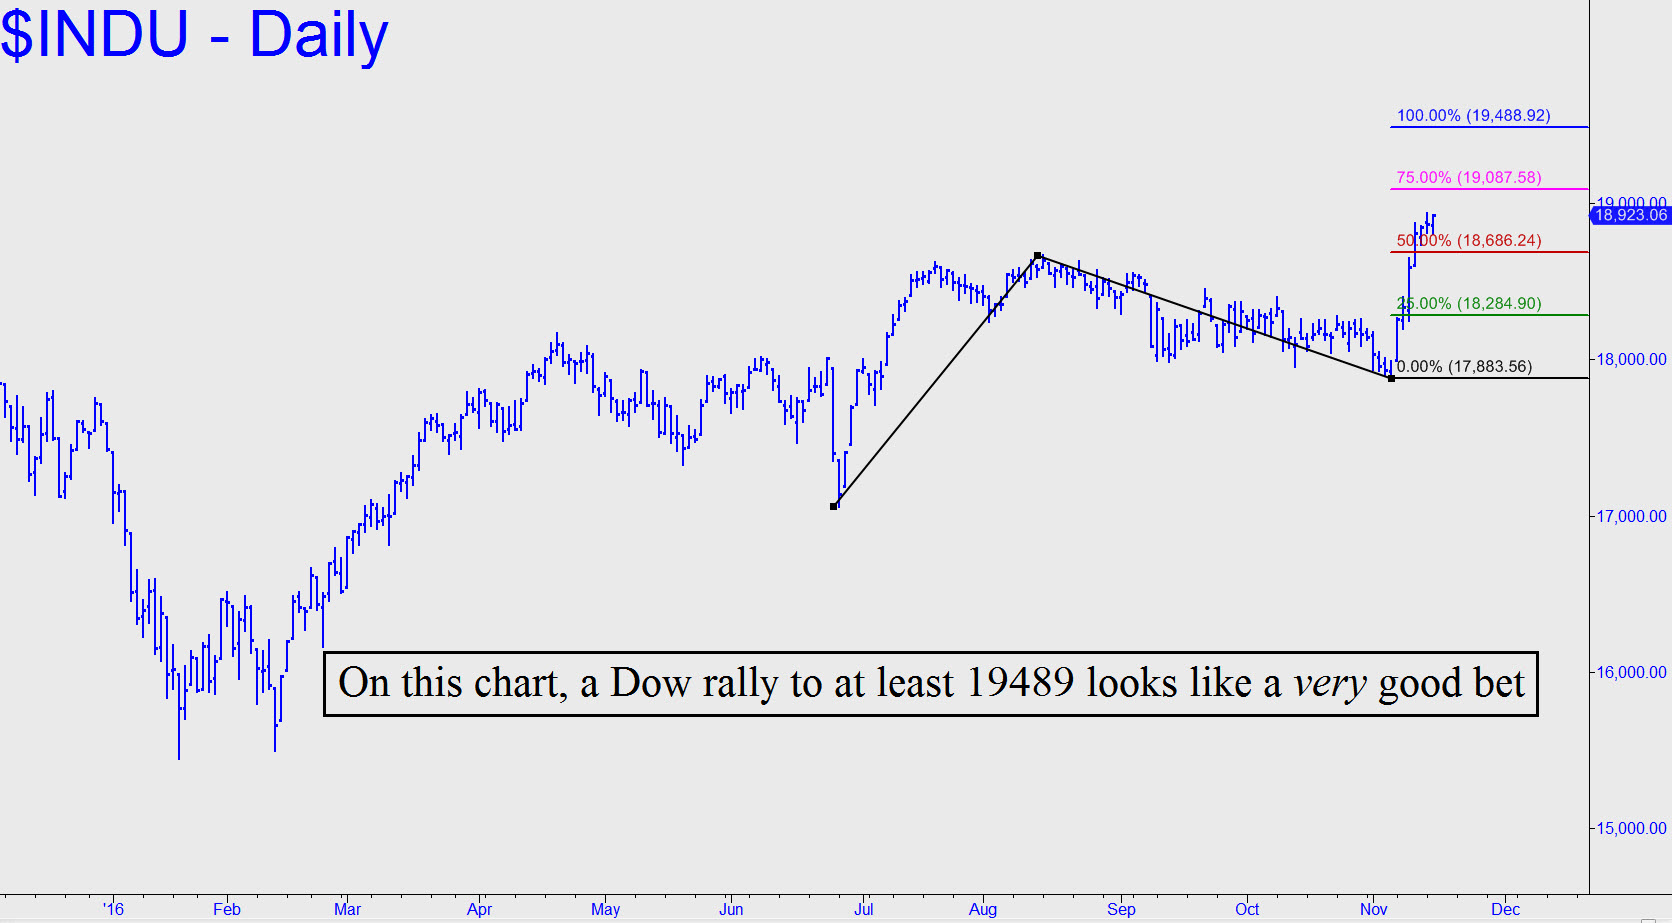 http://www.rickackerman.com/wp-content/uploads/2016/11/DJIA-rally-to-at-least.jpg